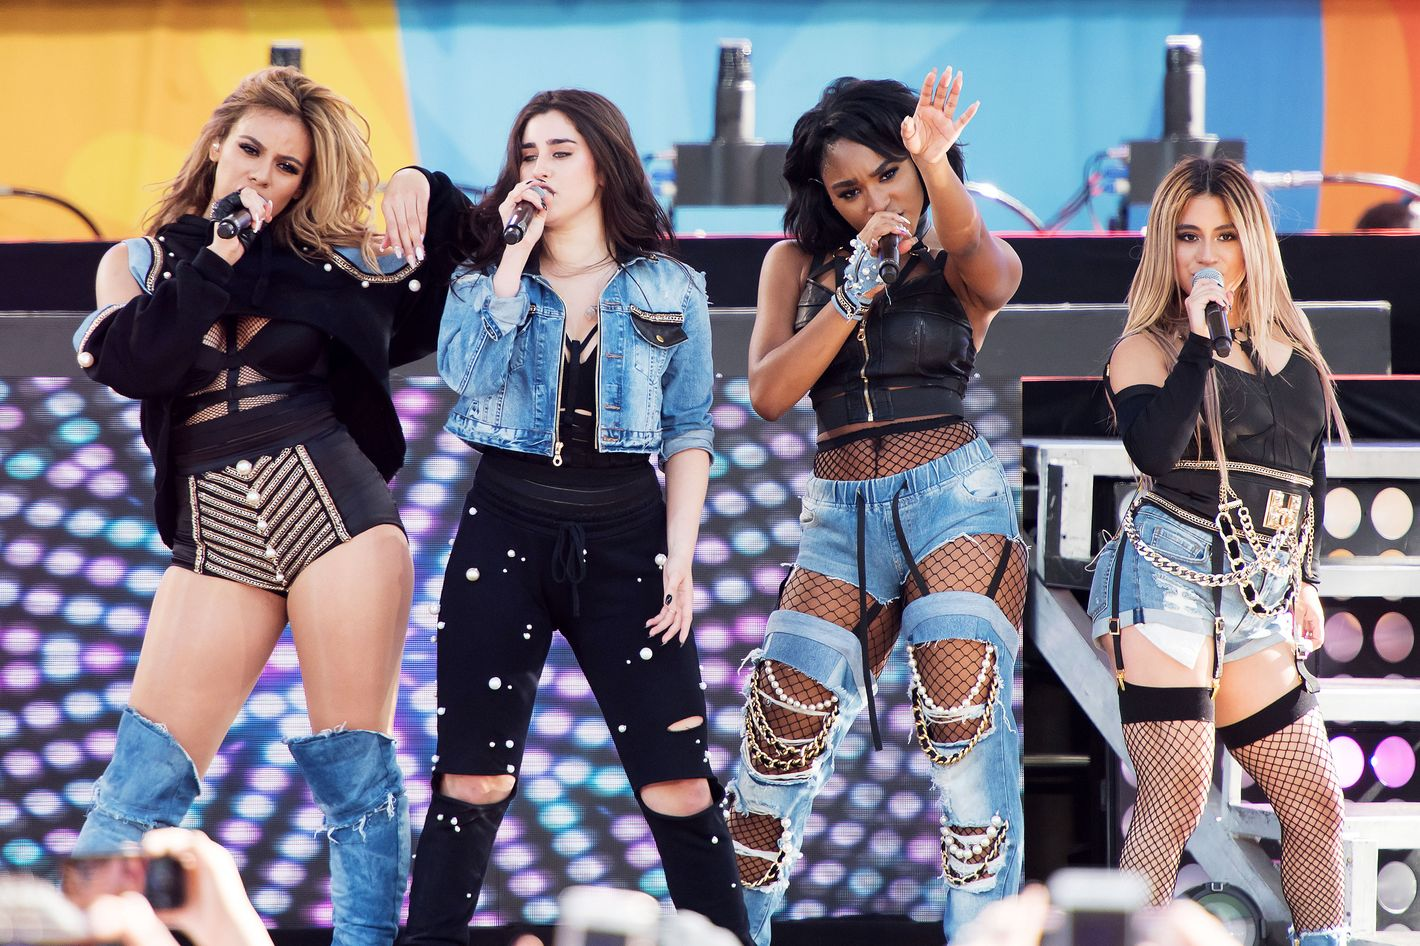 19-fifth-harmony-2.w710.h473.2x.jpg